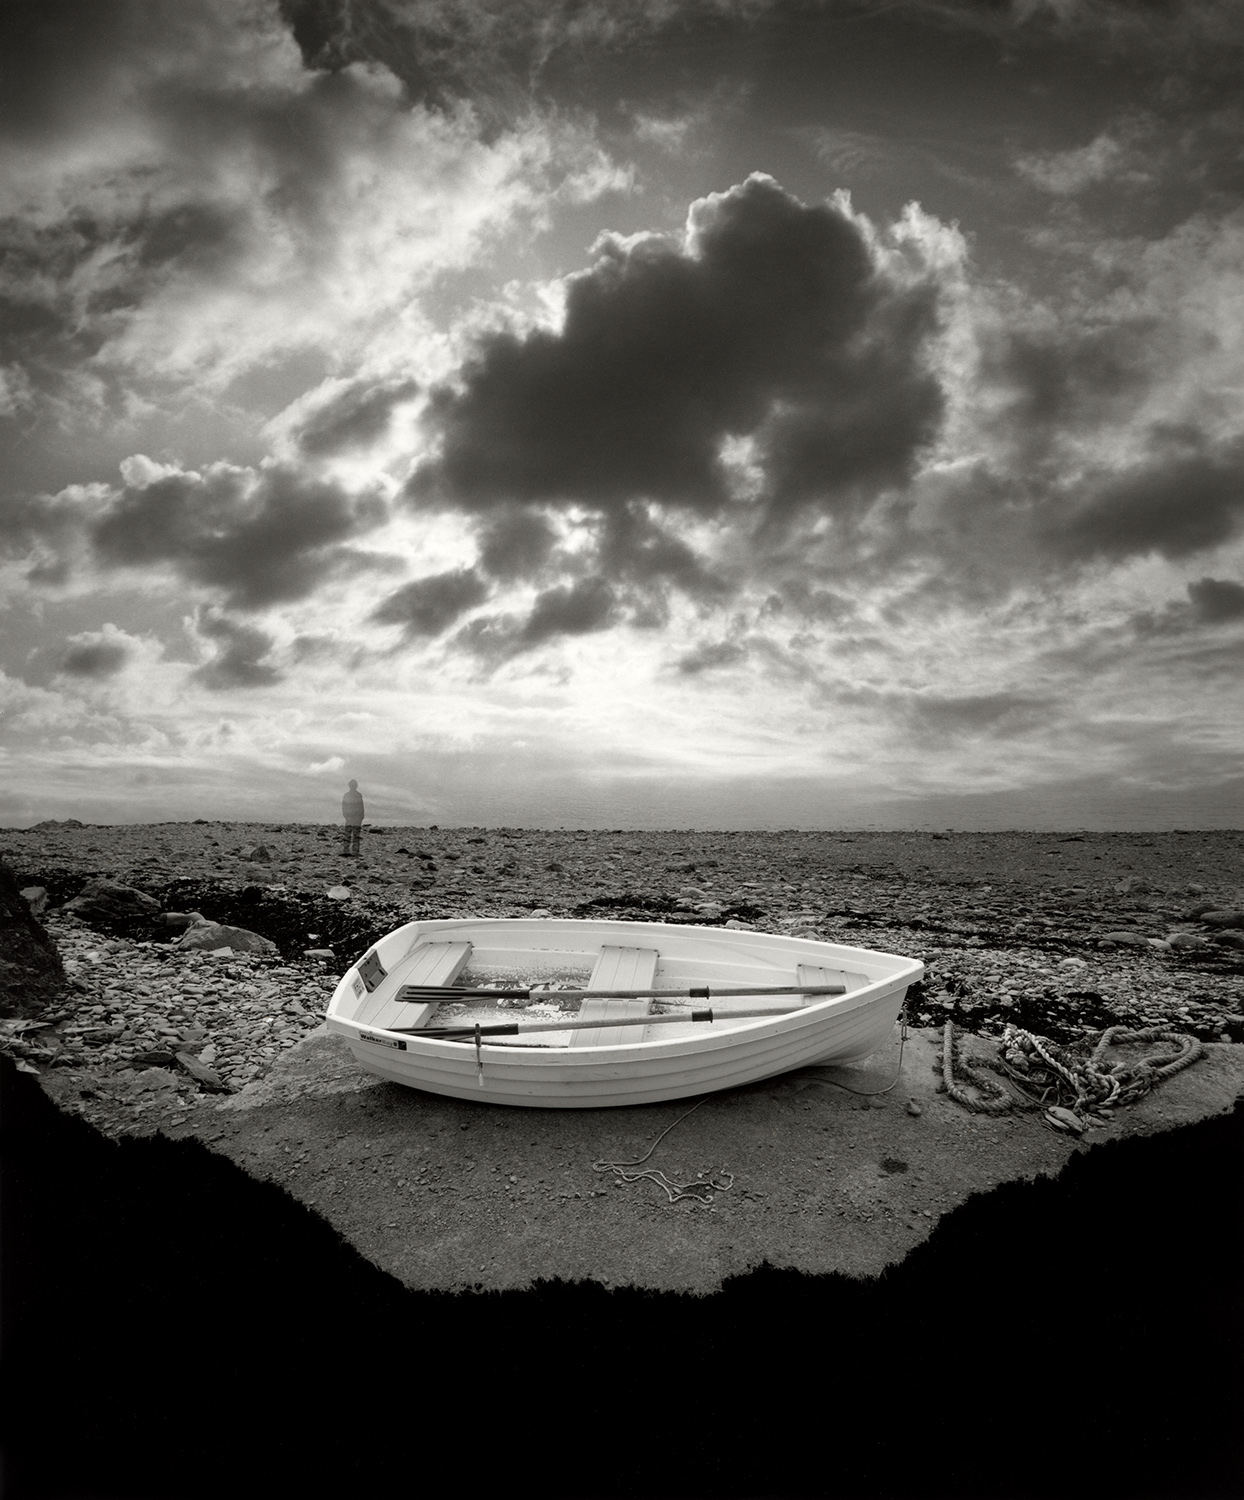 Jerry Uelsmann Small Boat Waiting Catherine Couturier Gallery